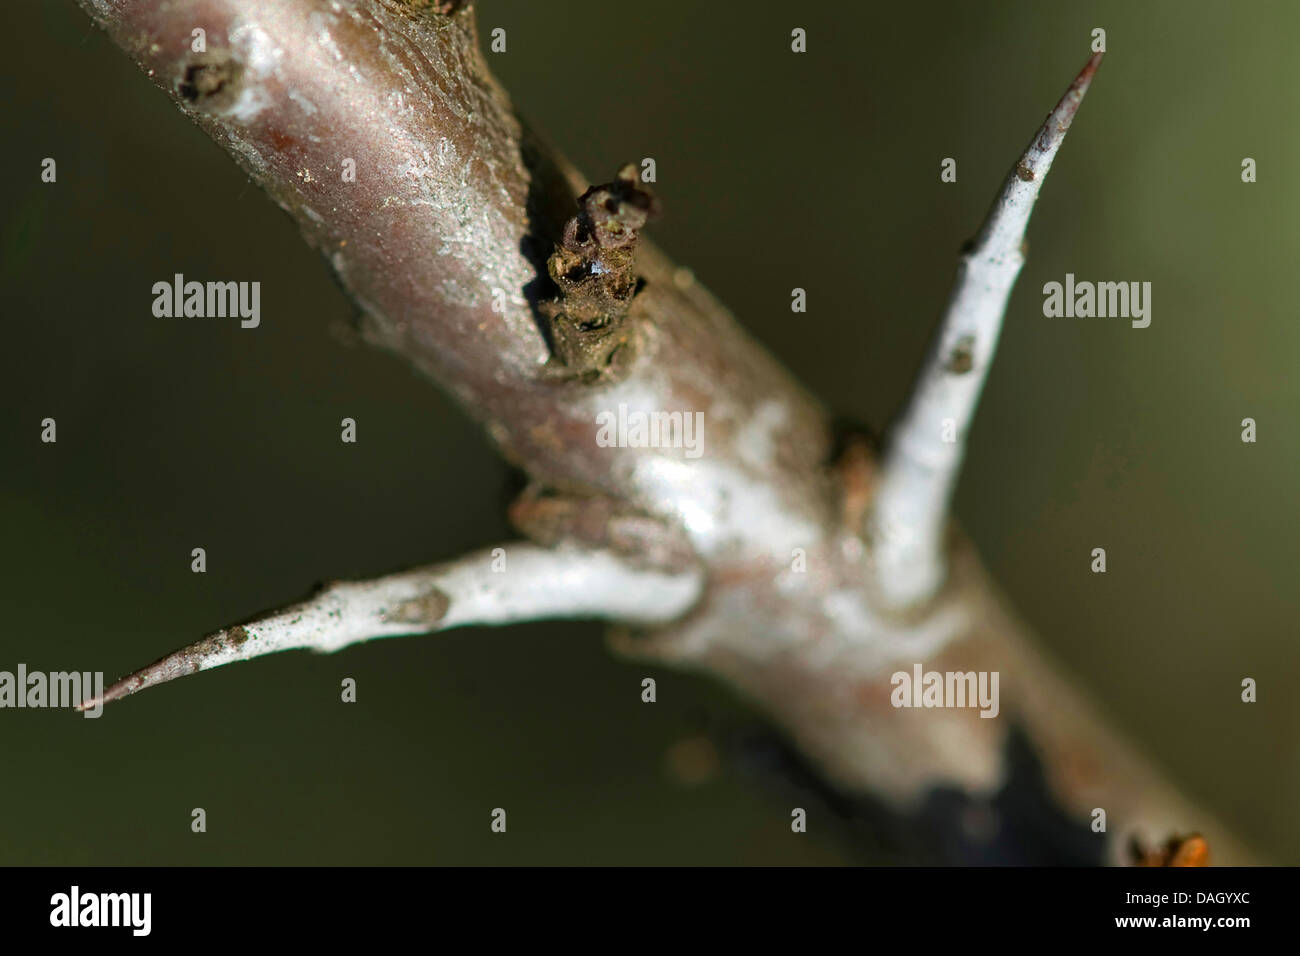 common seabuckthorn (Hippophae rhamnoides), twig with thorns, Germany - Stock Image